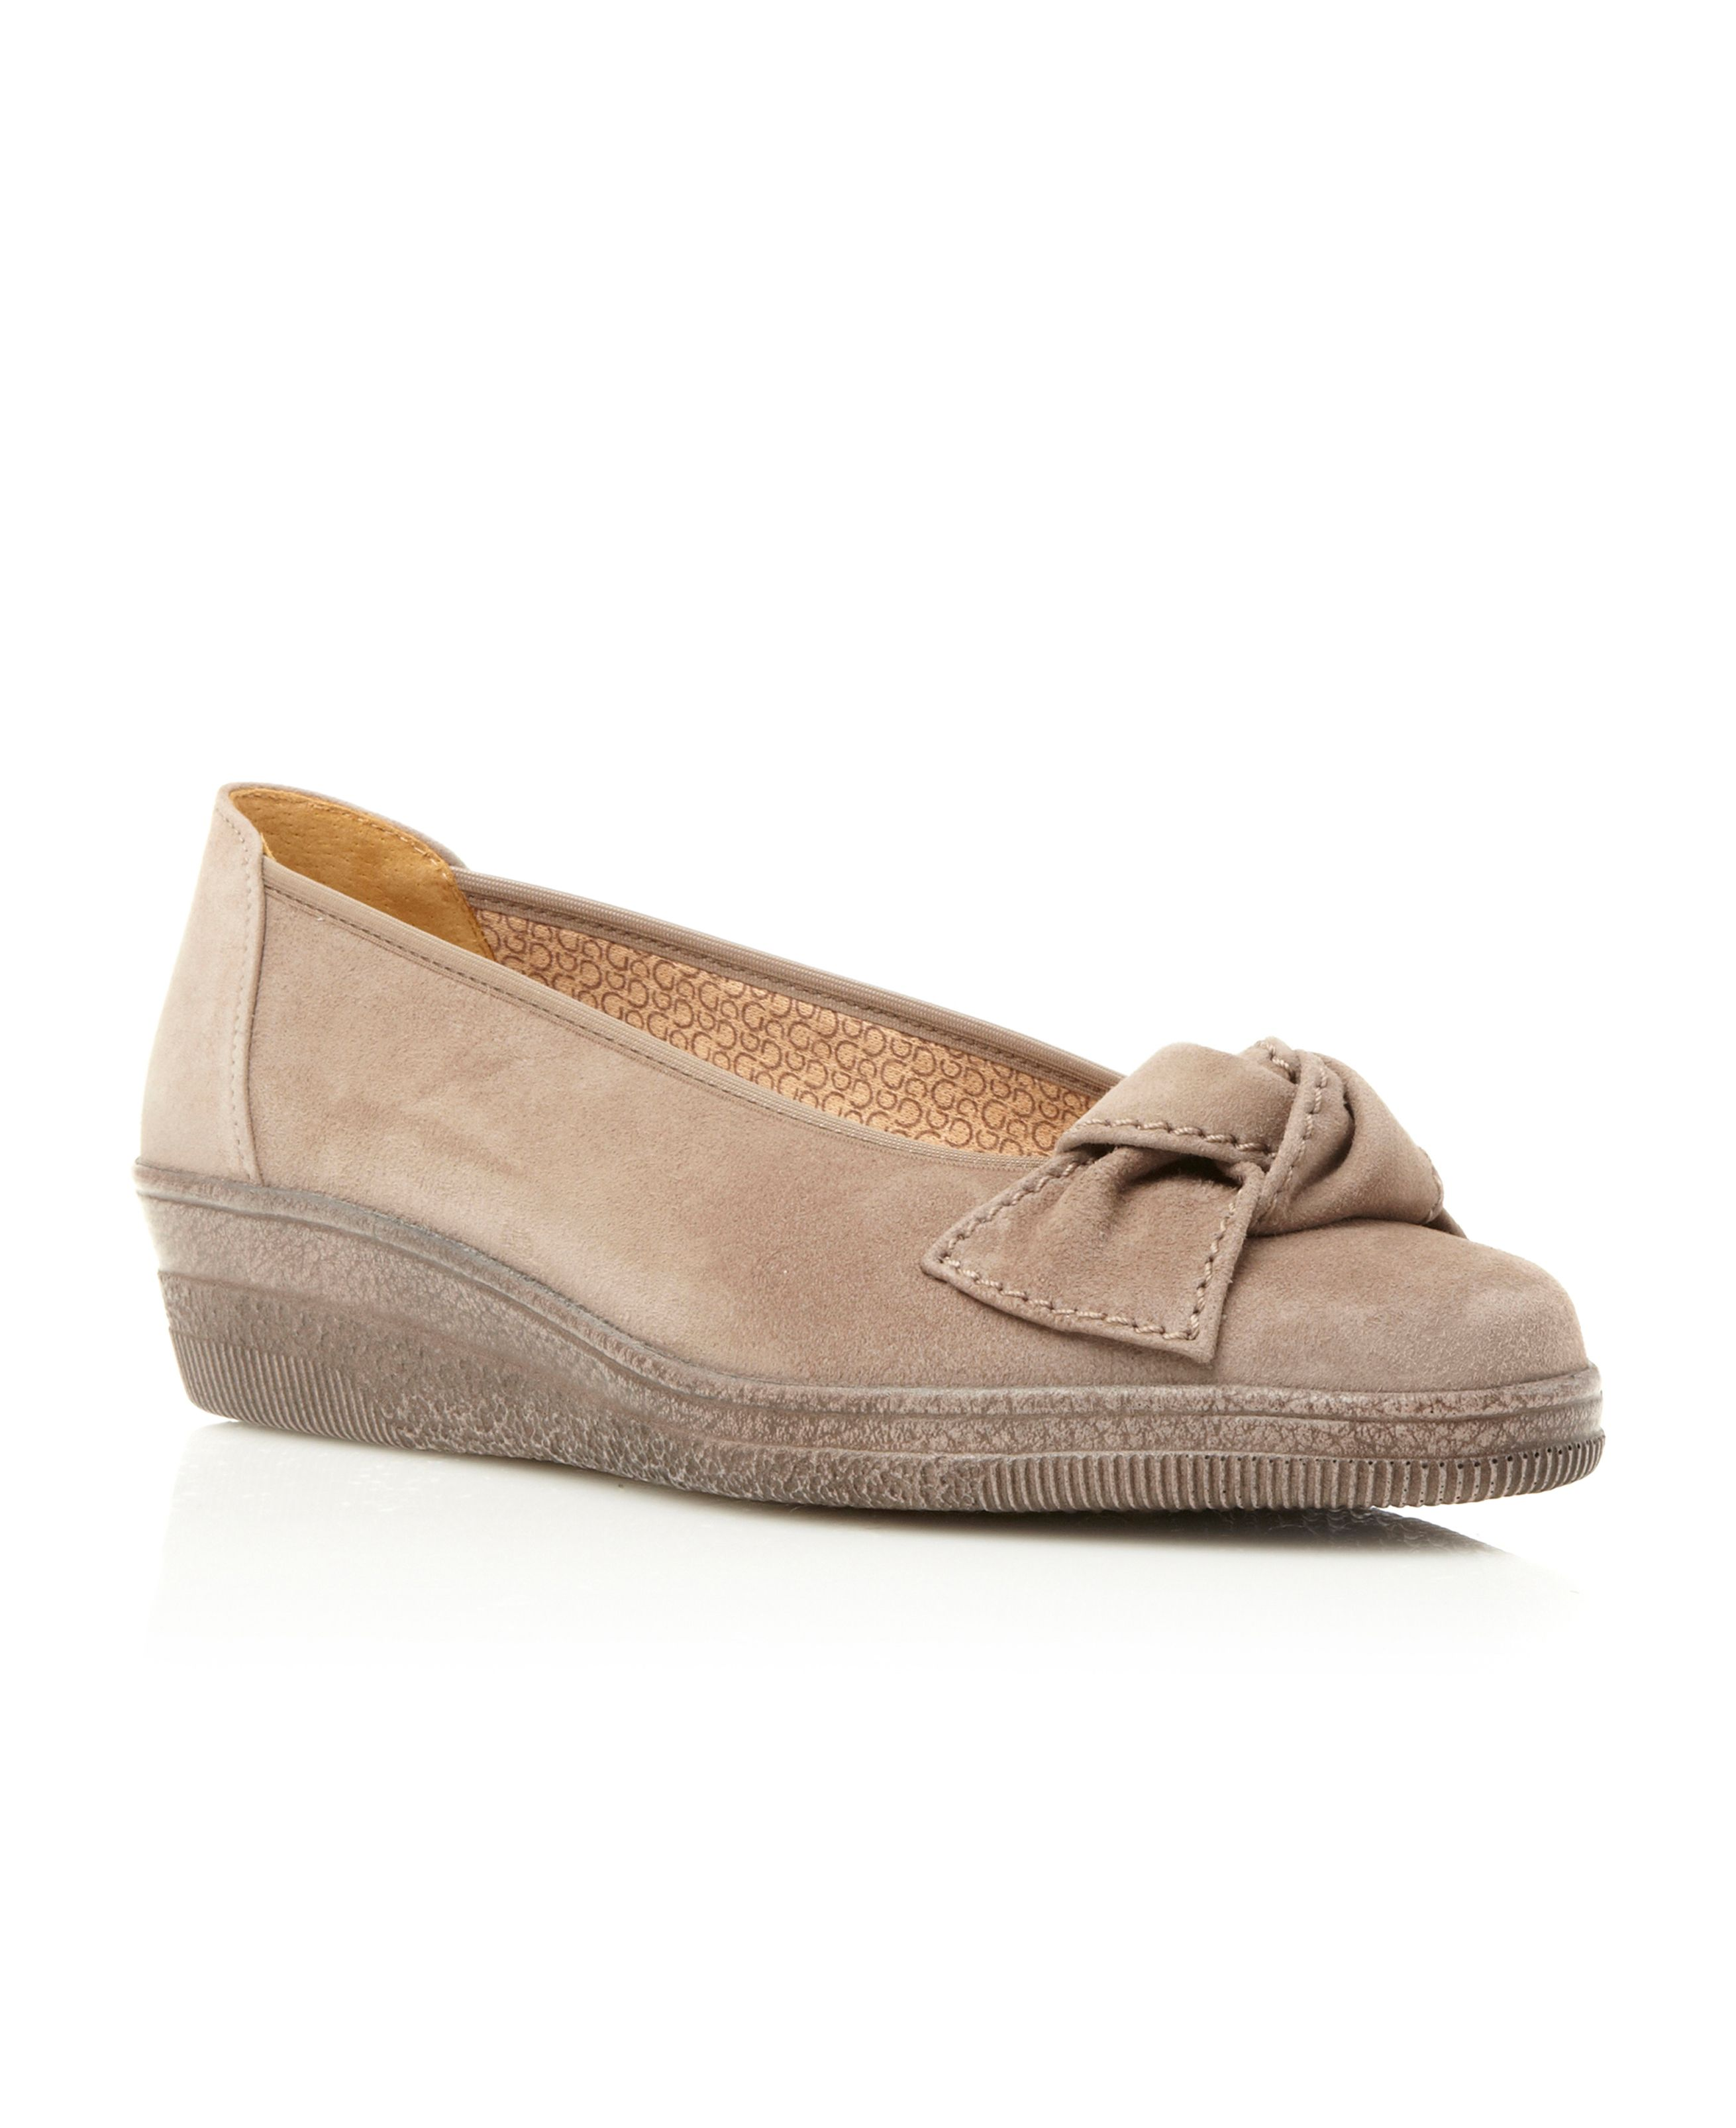 Lesley low wedge ballerinas